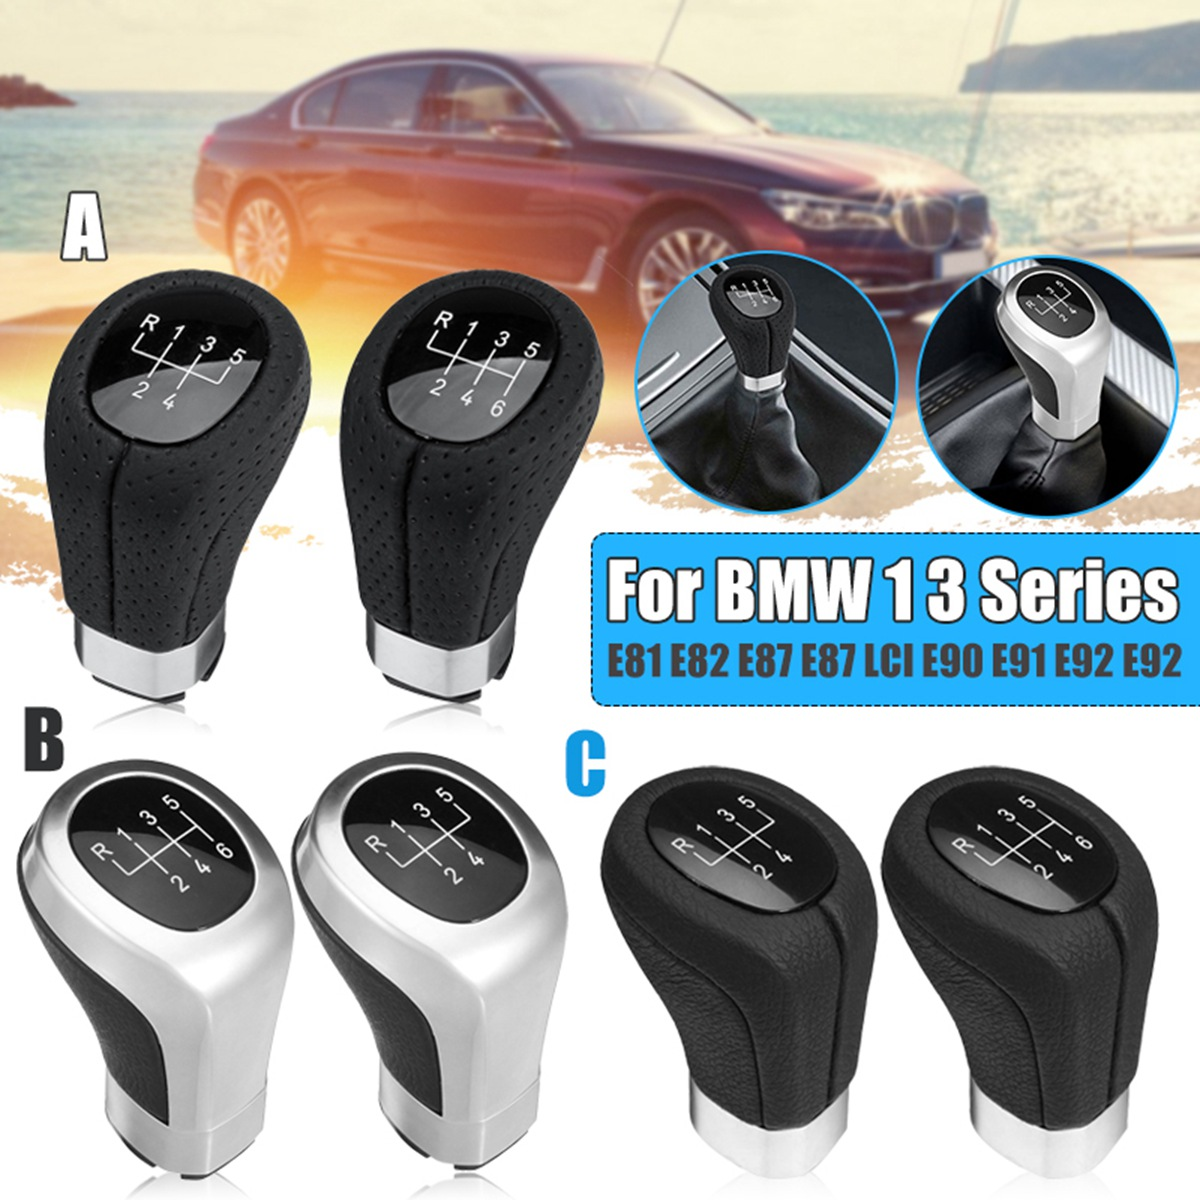 5 6 Speed Gear Shift Knob For Bmw 1 3 Series E81 E82 E87 E88 E90 E91 E92 E93 Excellent Quality Back To Search Resultsautomobiles & Motorcycles